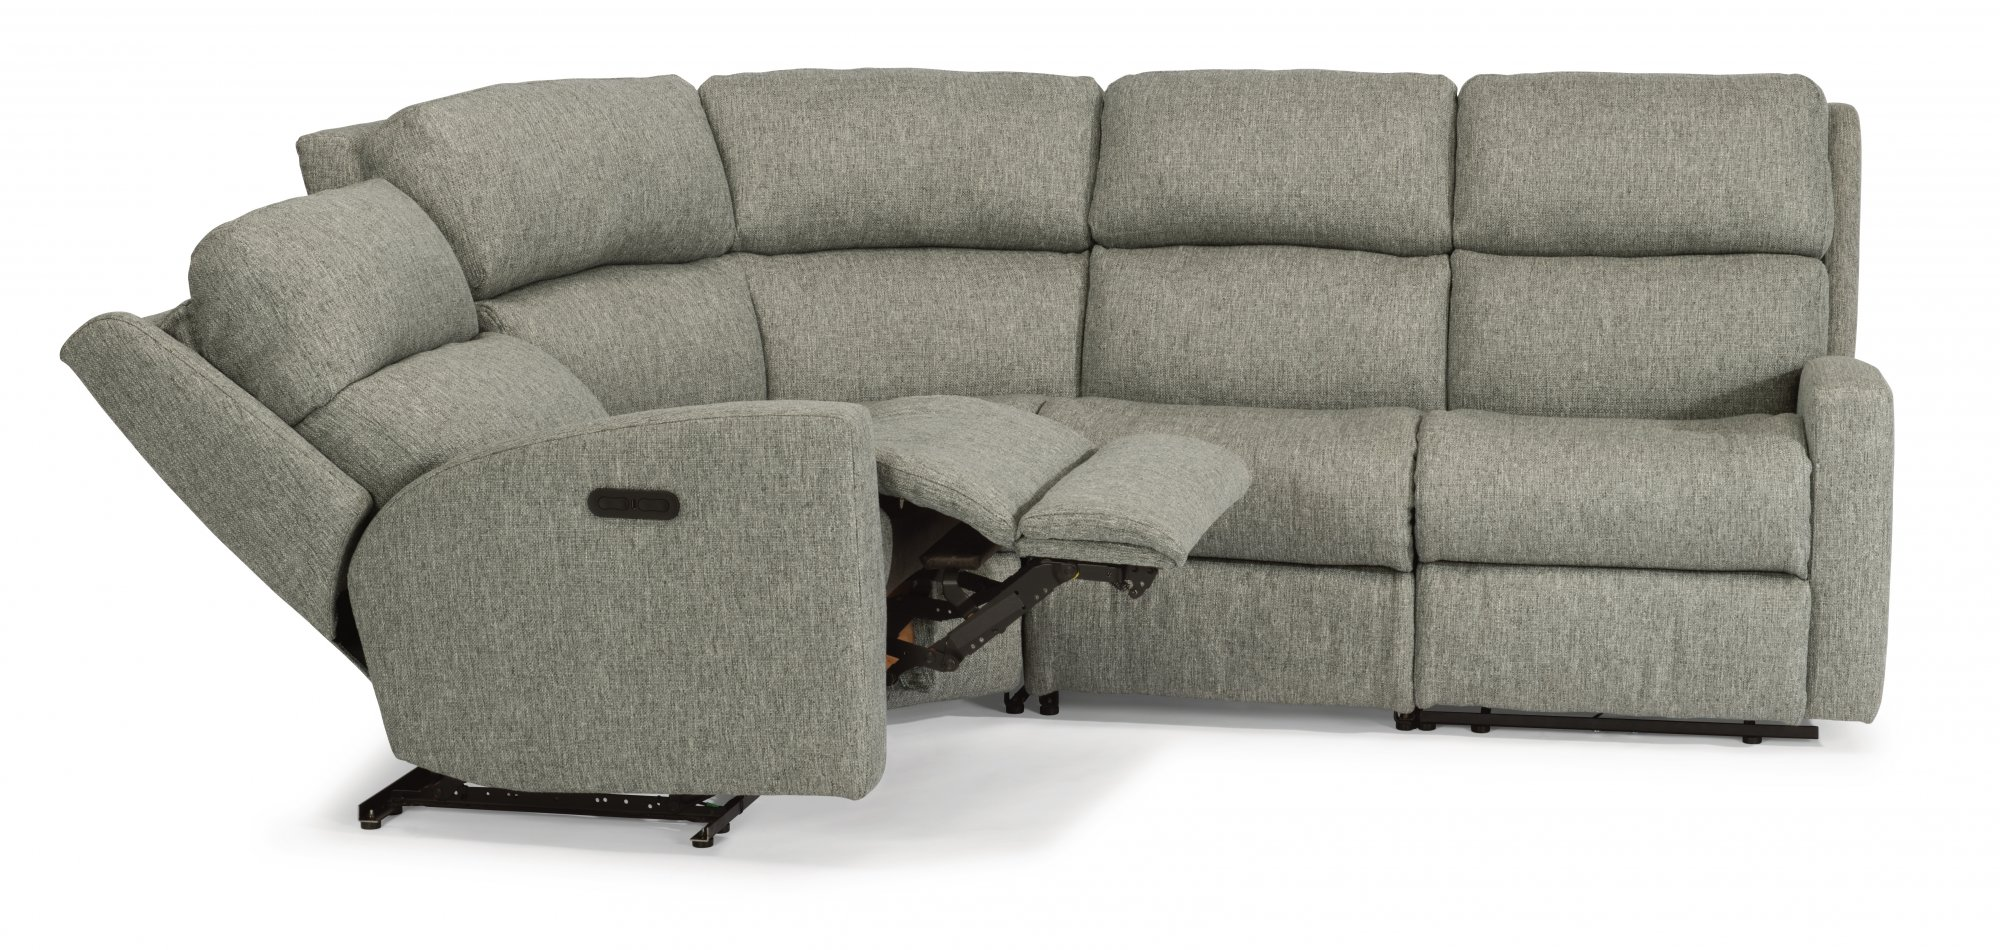 Flexsteel Catalina  Fabric Power Reclining Sectional with Power Headrests